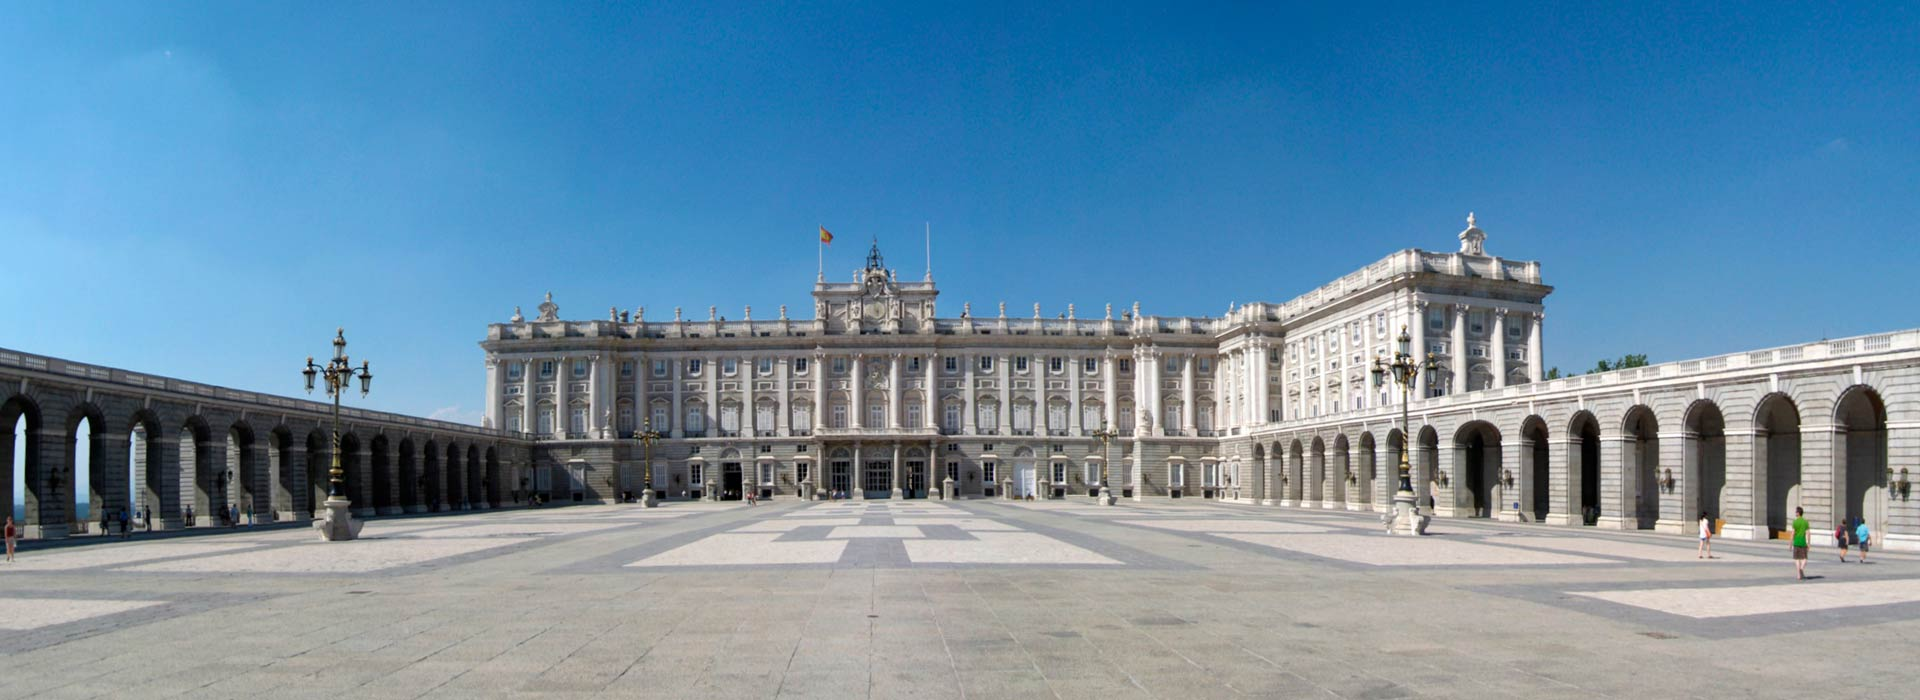 Madrid.Palacio Real